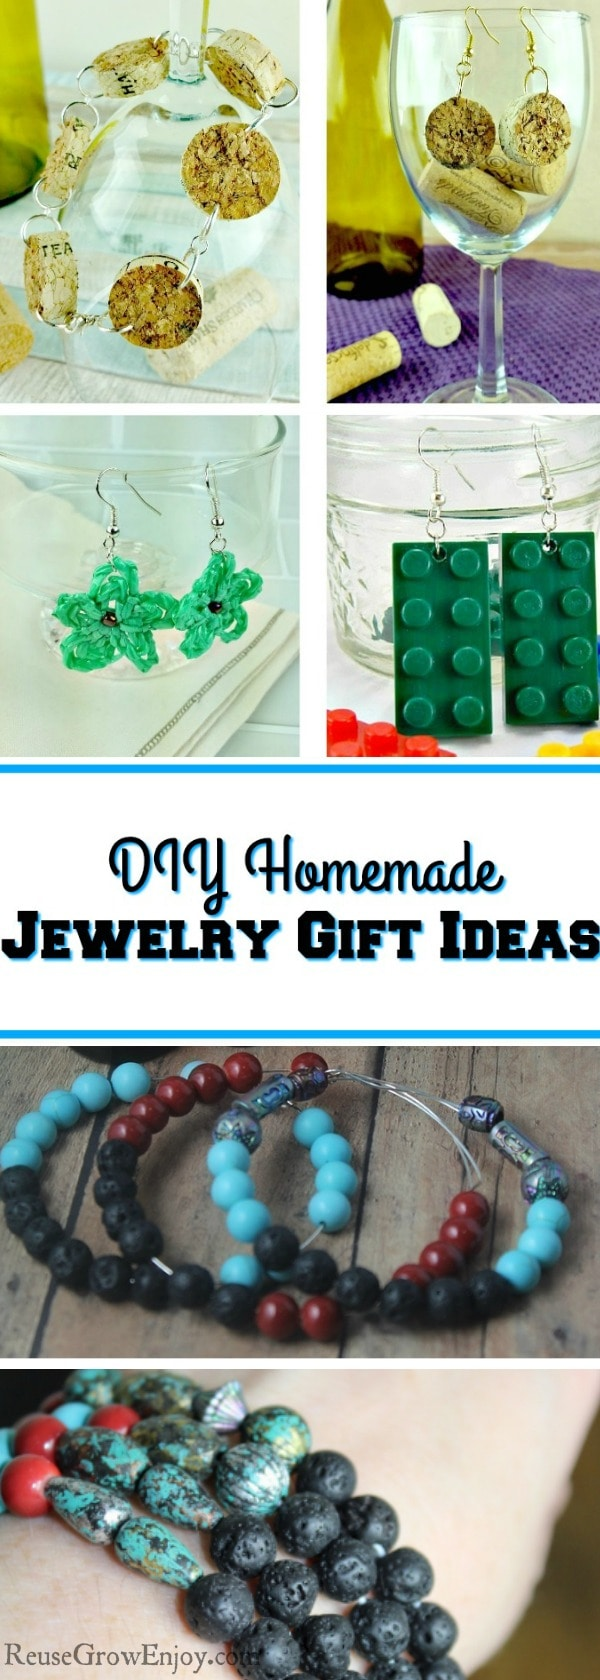 Diy Jewelry Gift Ideas All Homemade Reuse Grow Enjoy